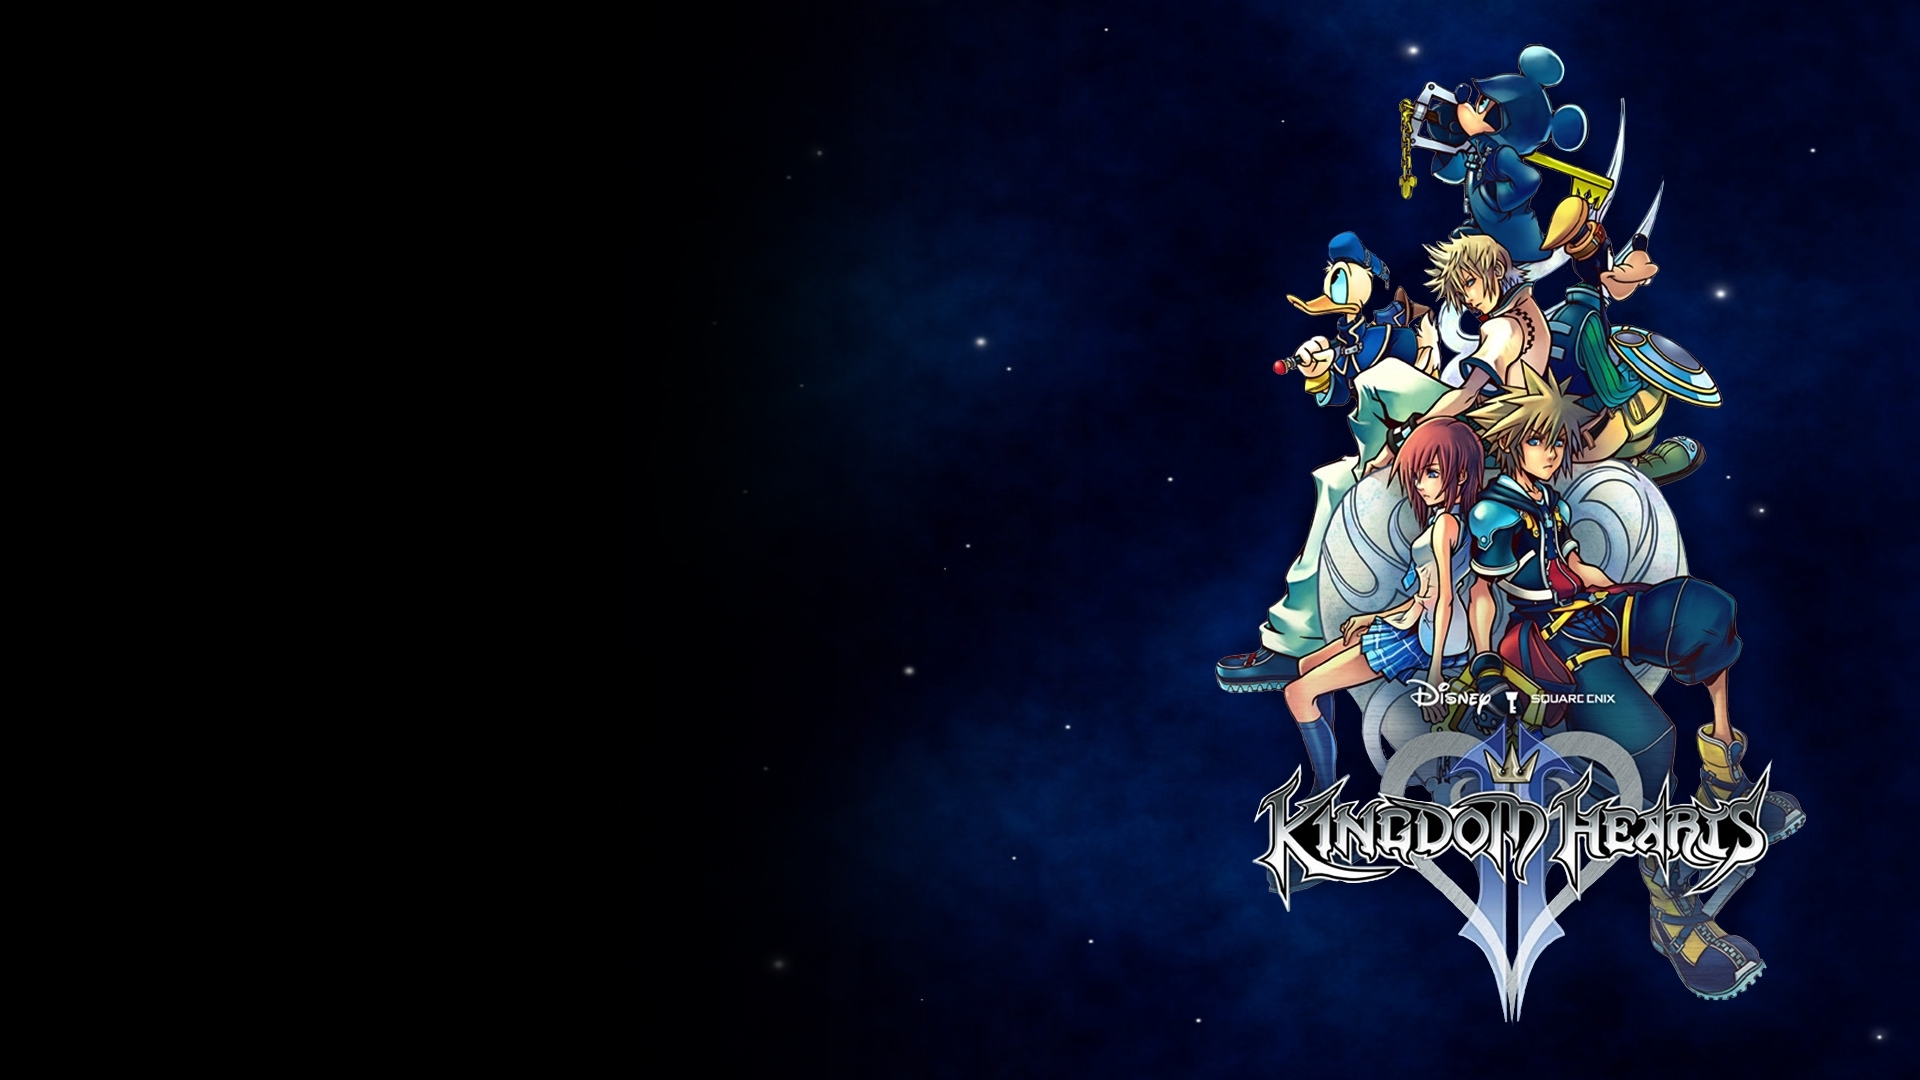 kingdom hearts ii wallpaper full hd fond d'écran and arrière-plan